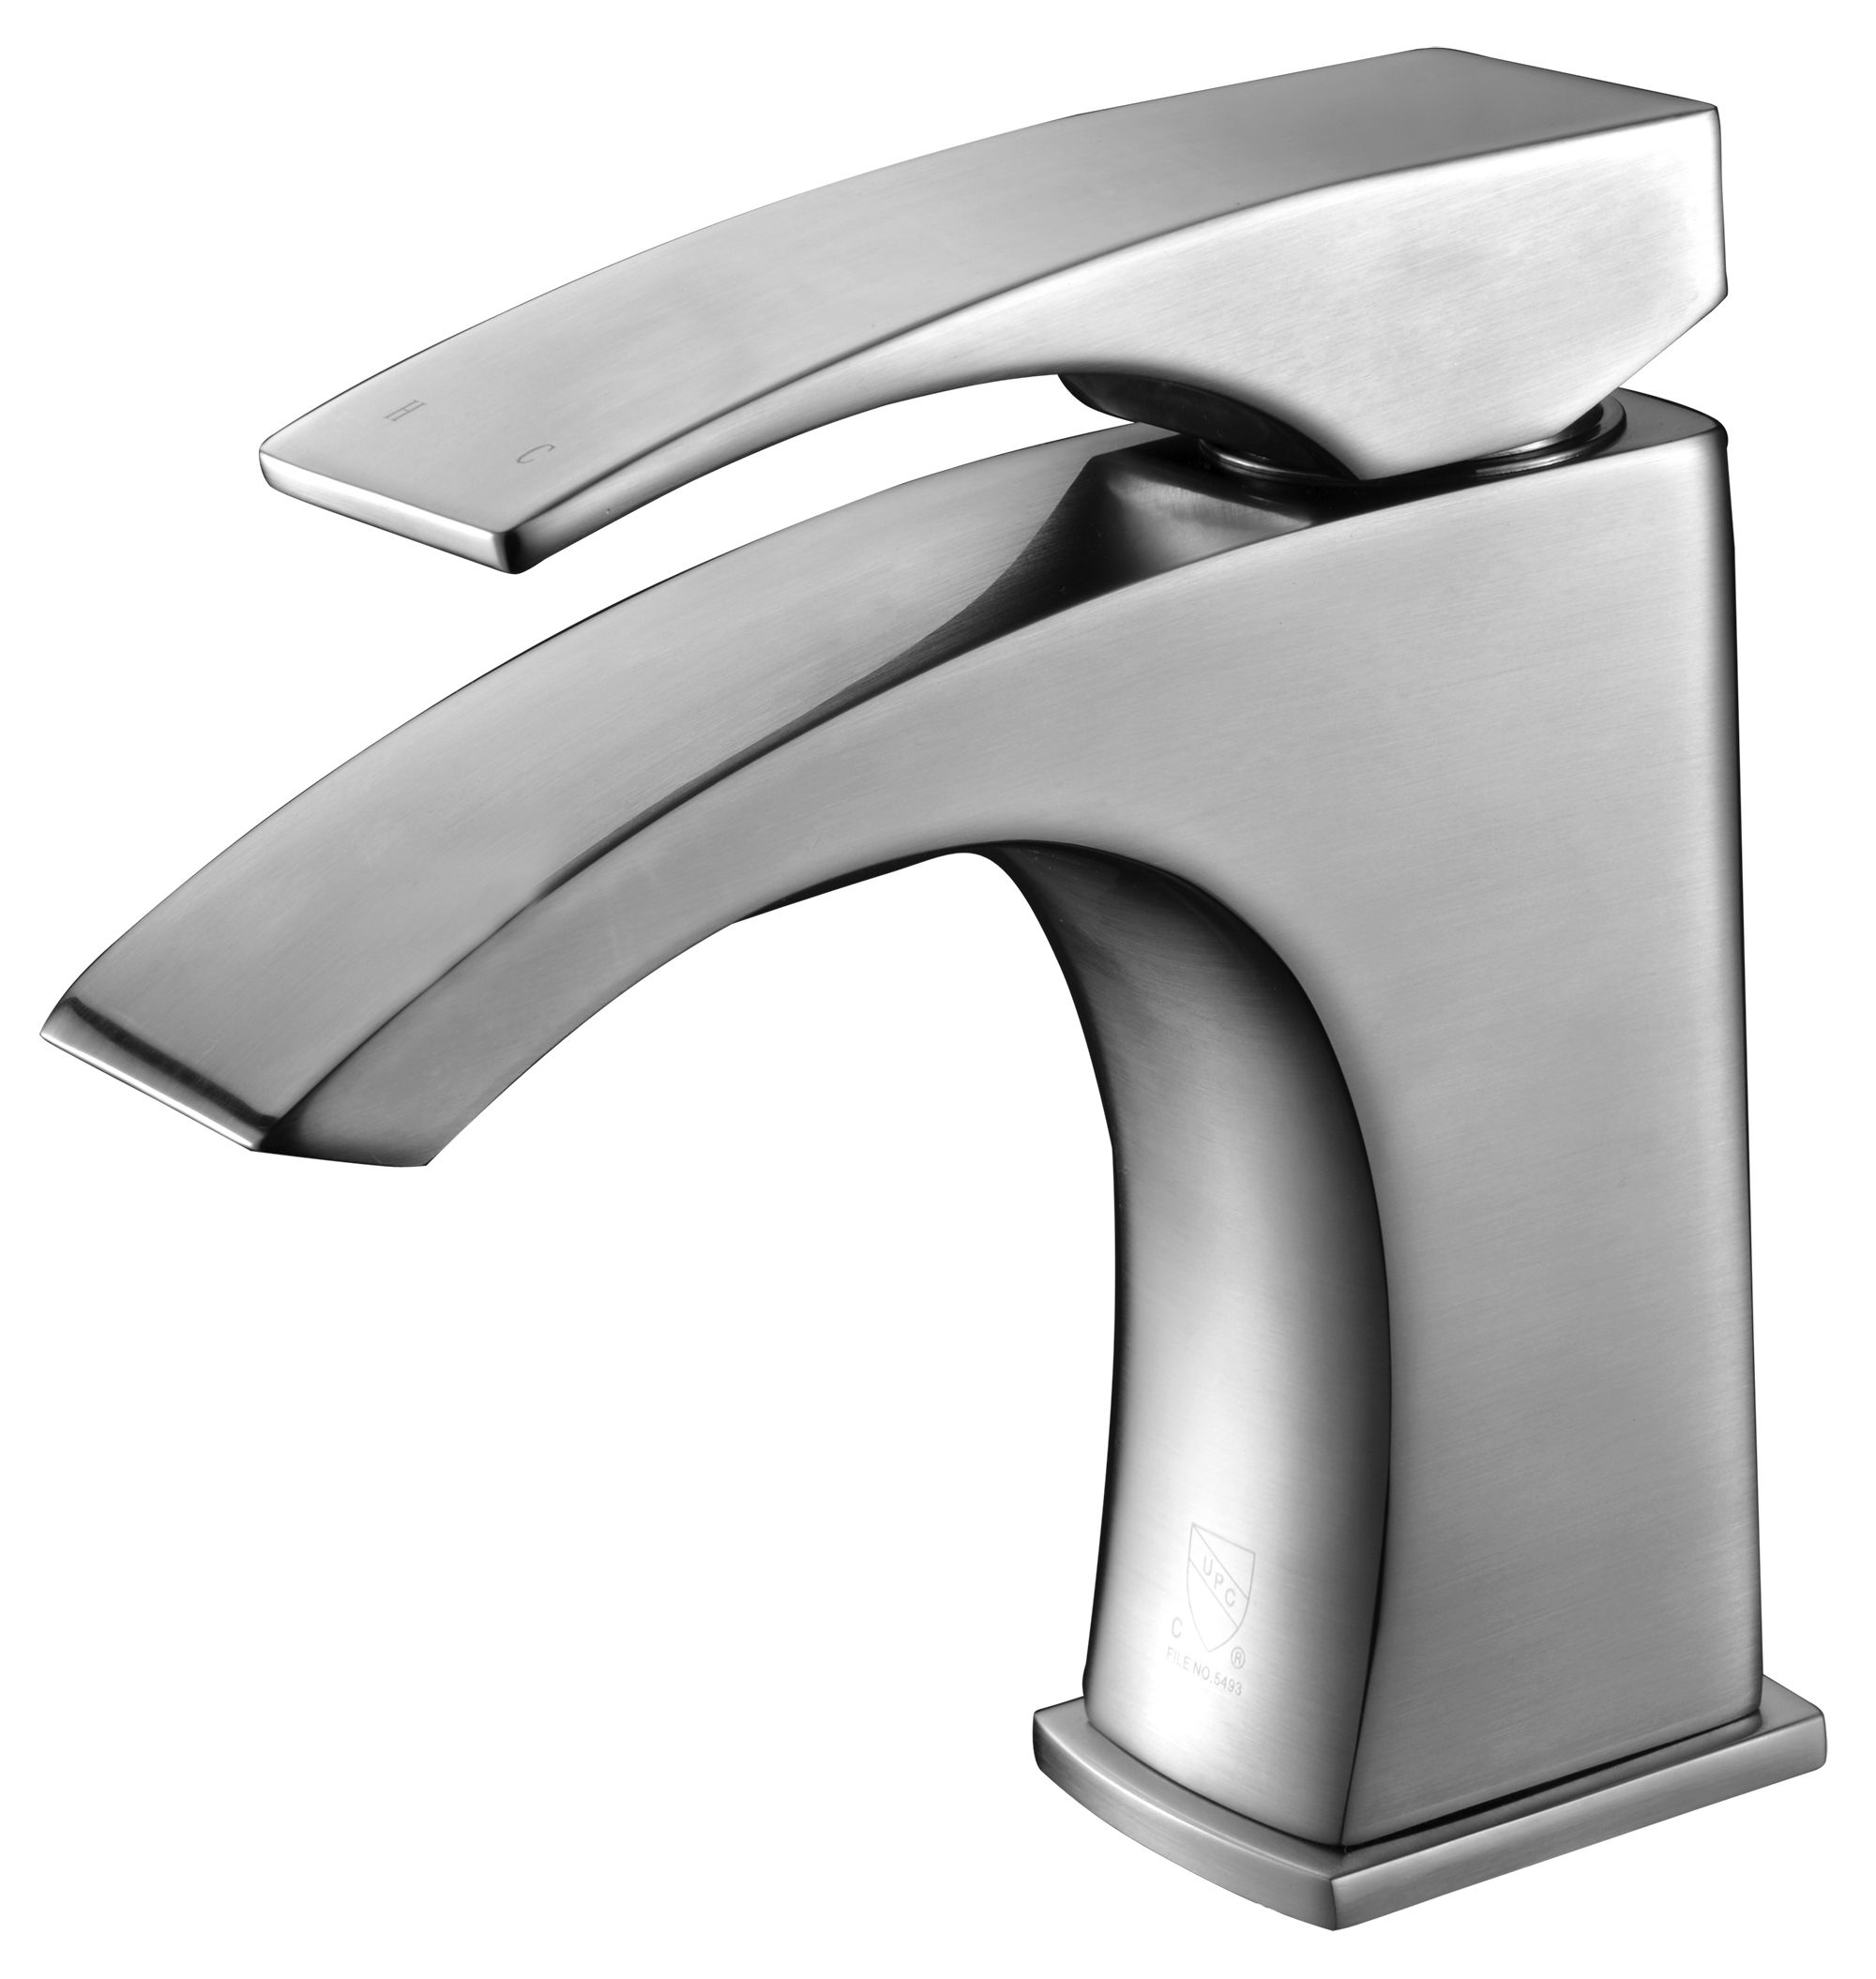 ALFI Brand AB1586 Brushed Nickel or Polished Chrome Single Lever Bathroom Faucet